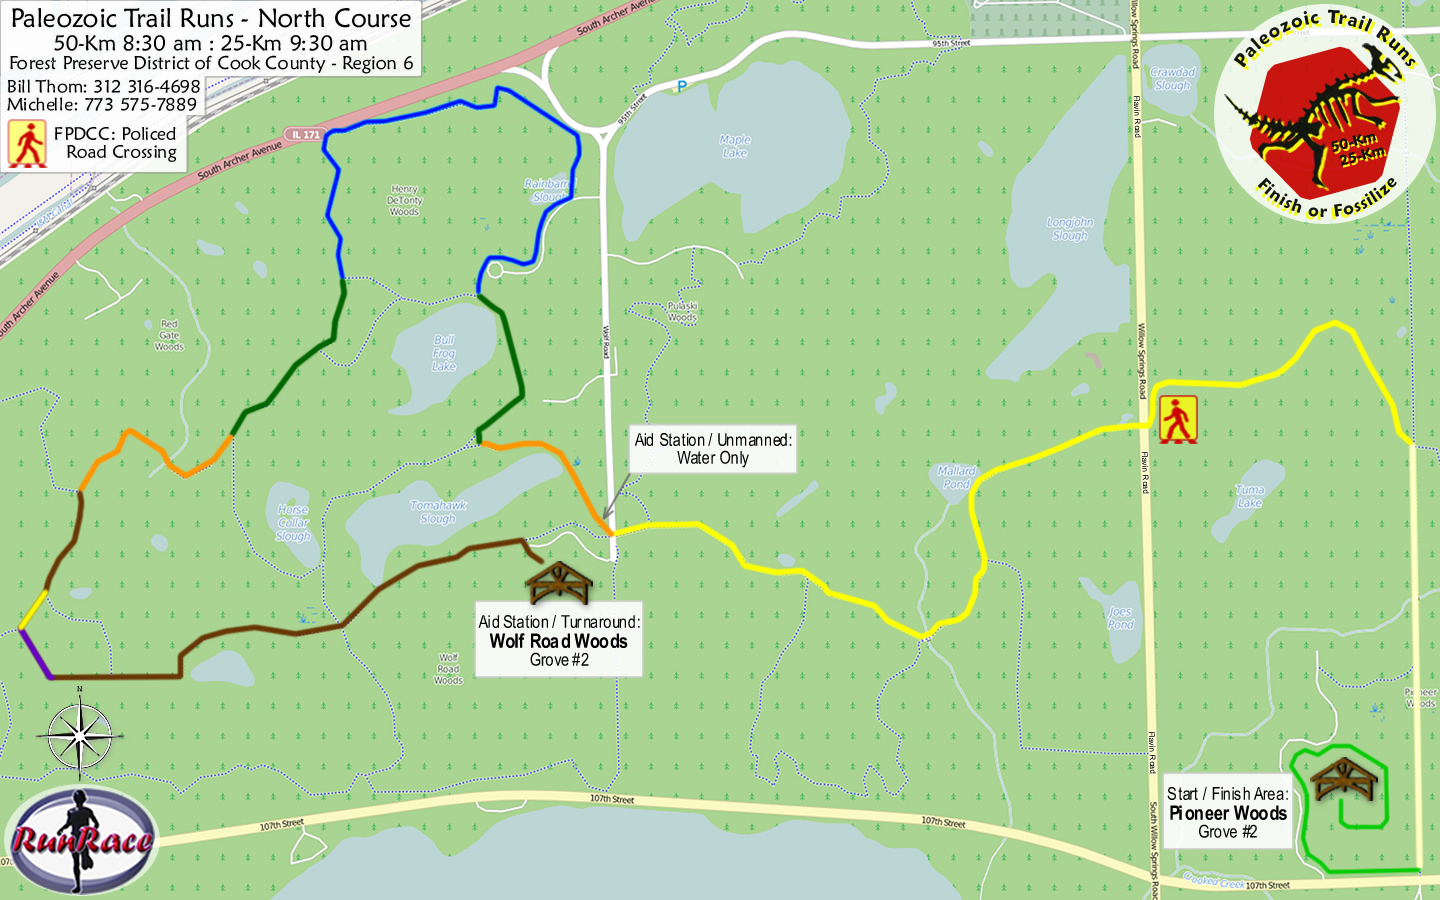 [racecourse map: Paleozoic Trail Runs - Devonian Spring]